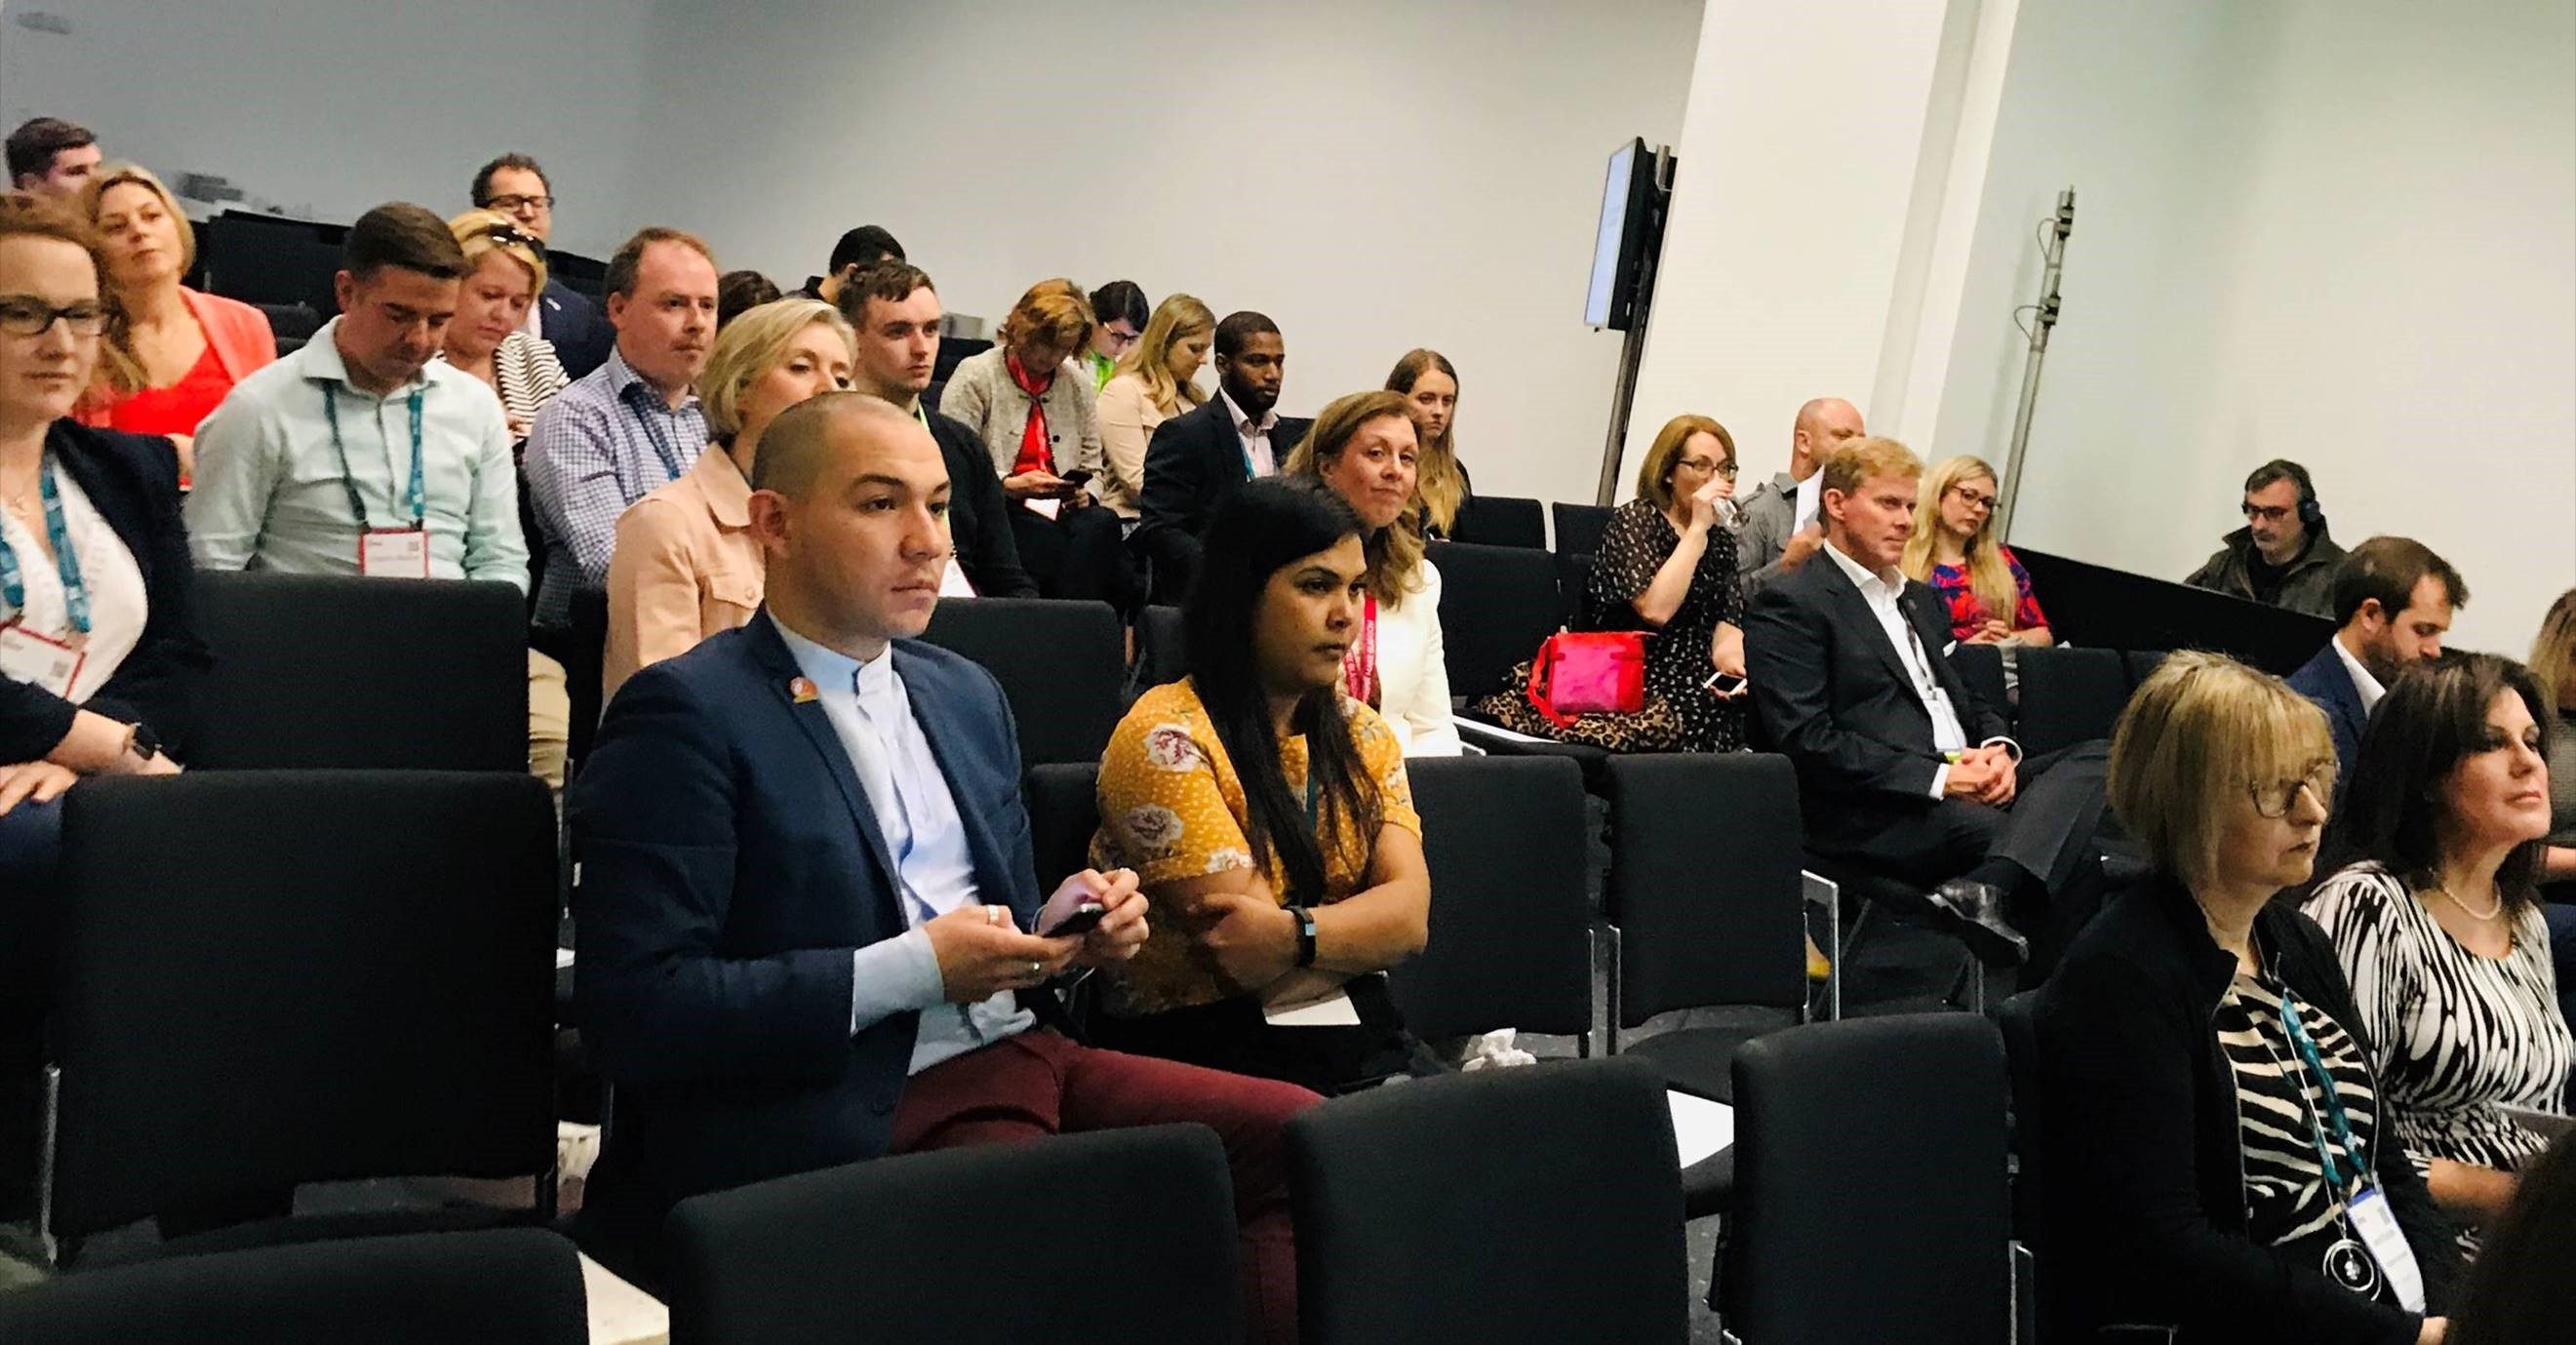 Venue and destination members of the ICCA UK & Ireland Chapter voiced positive attitudes and commitment to the challenges of Brexit and ongoing political uncertainty in the UK during the annual half year ICCA chapter meeting at IMEX Frankfurt.